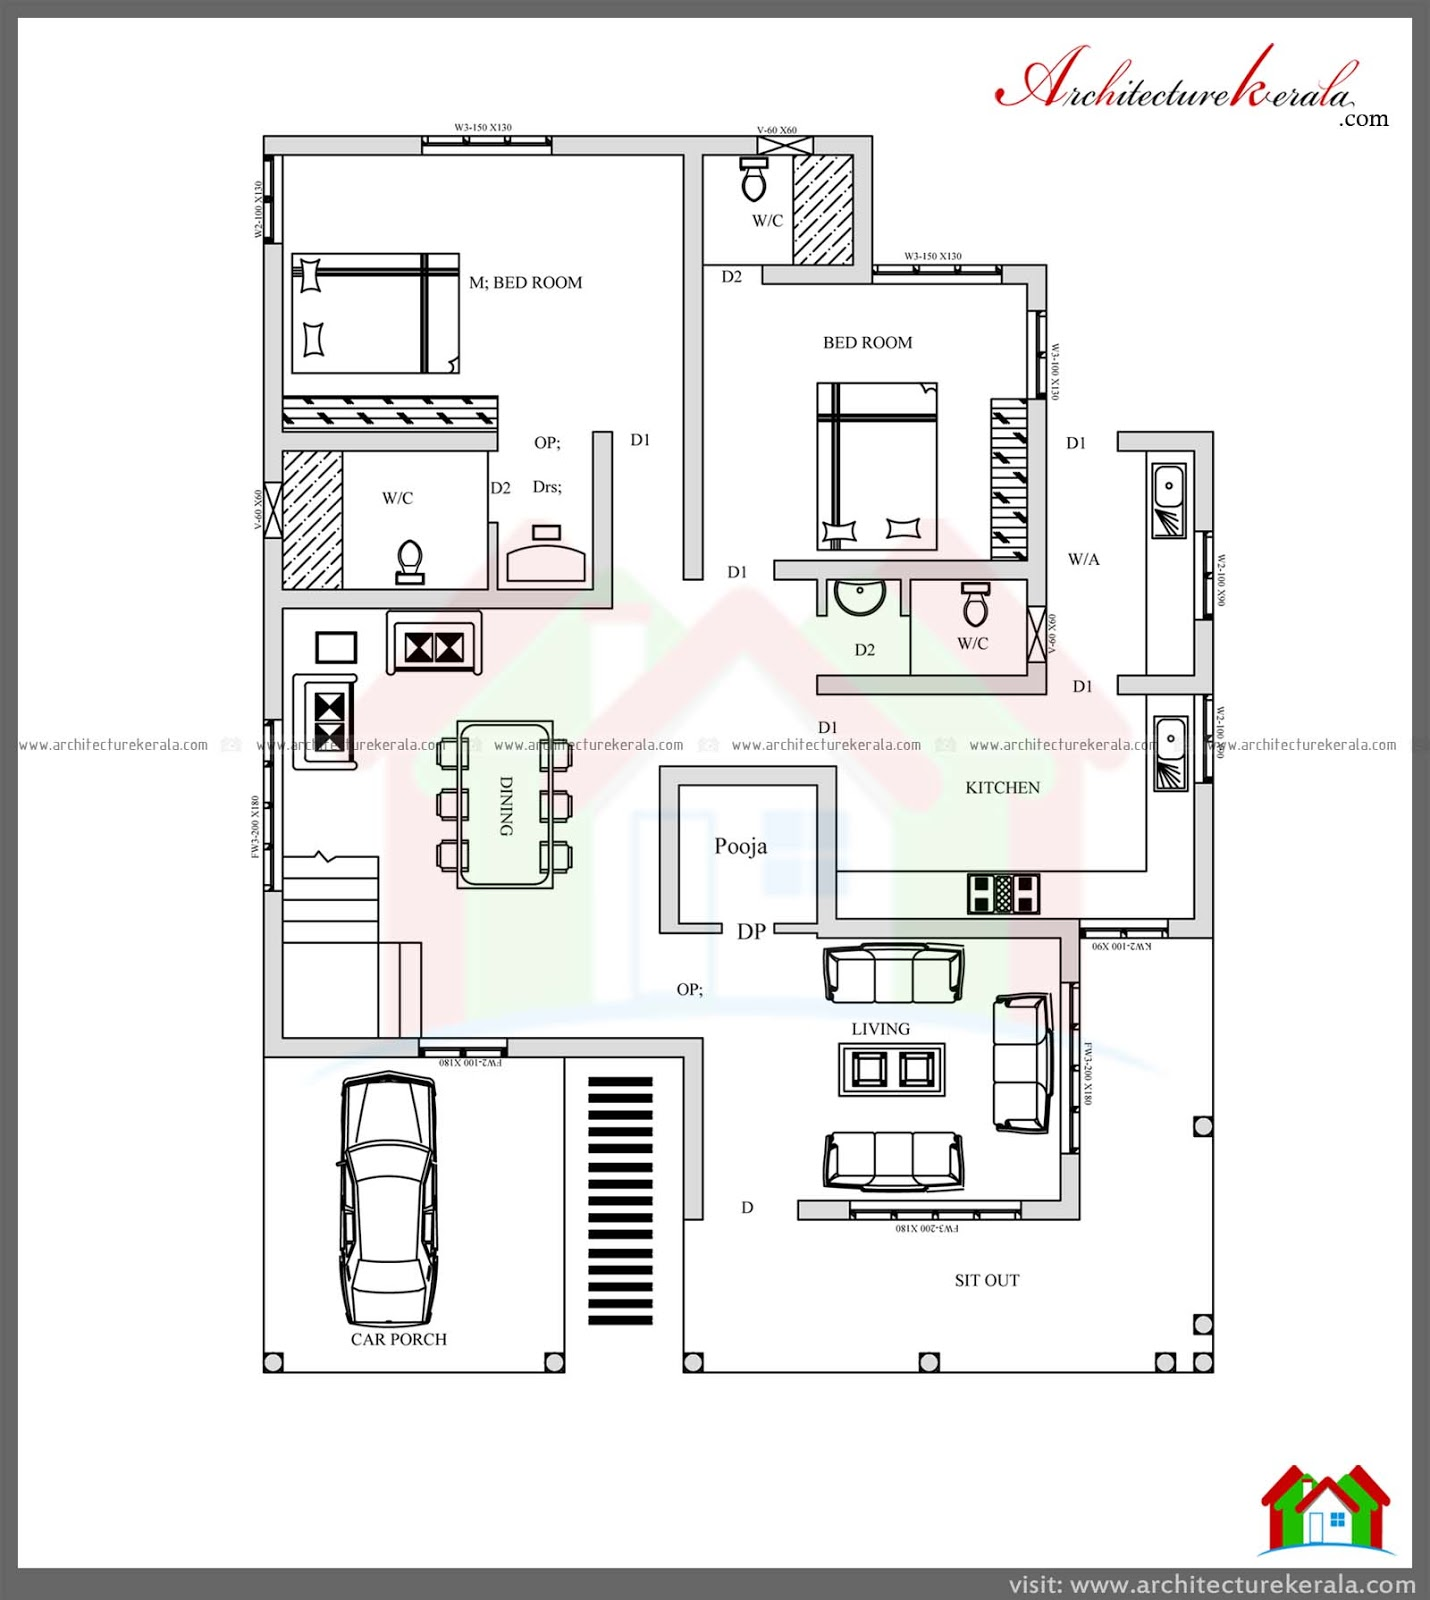 4 bed house plan with pooja room architecture kerala for Kerala house plans and elevations